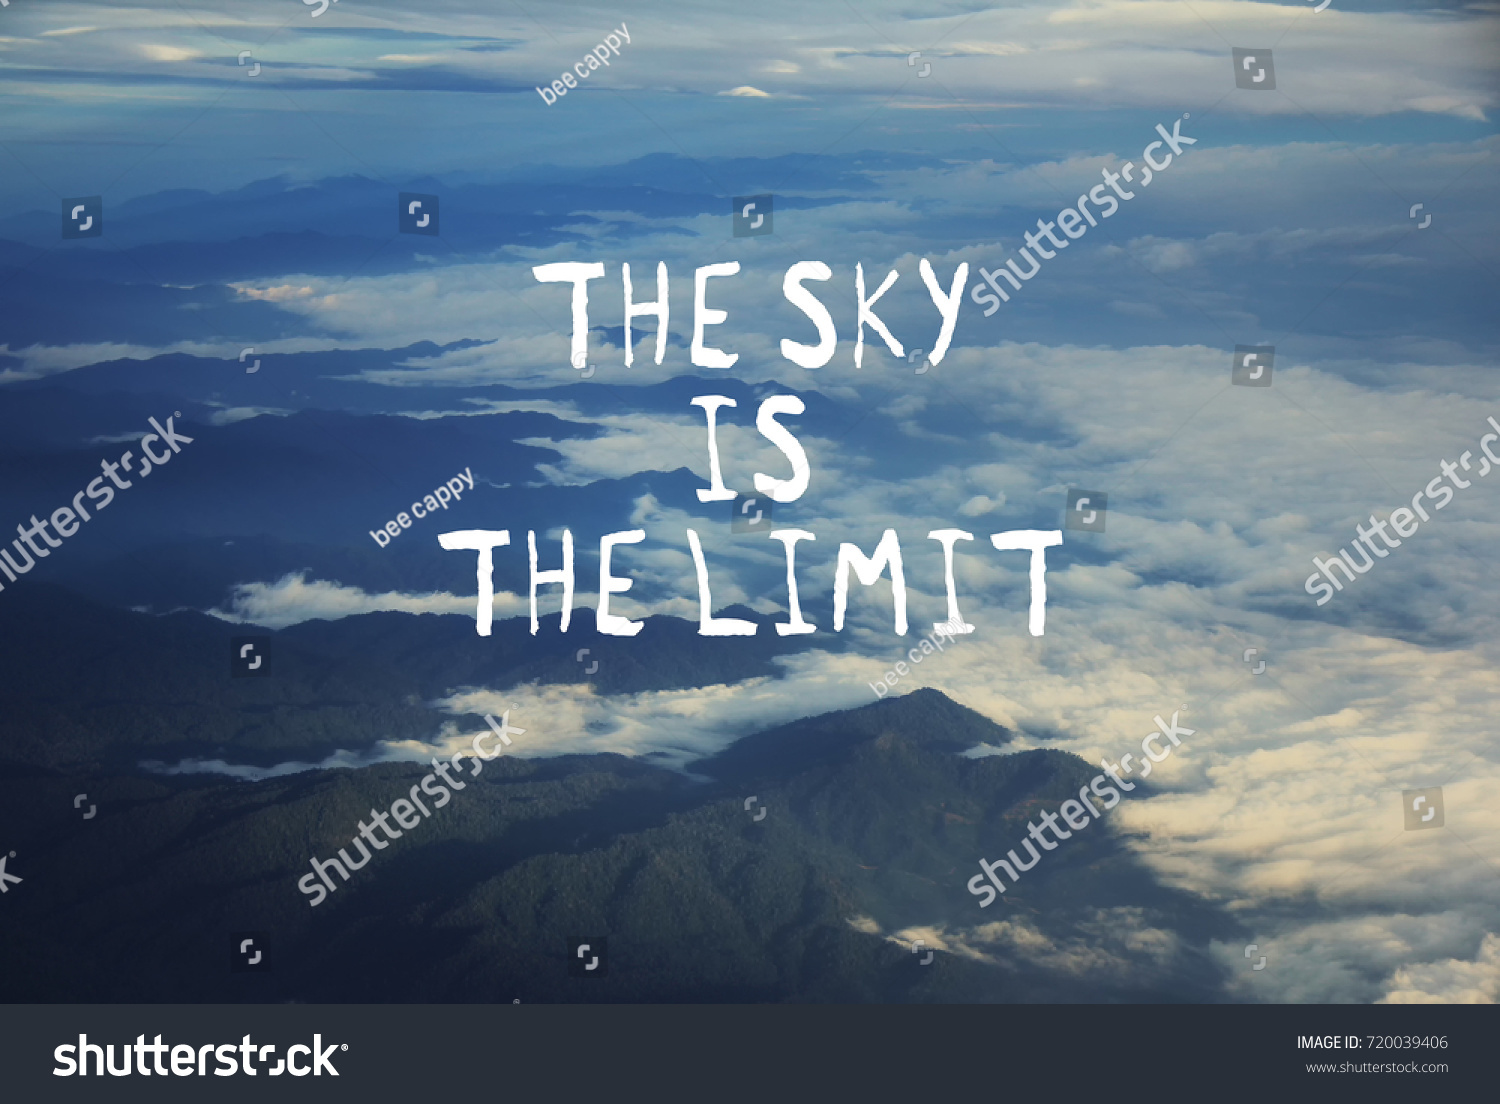 Motivation Quotes Sky Limit Blurred Background Stockfoto Jetzt